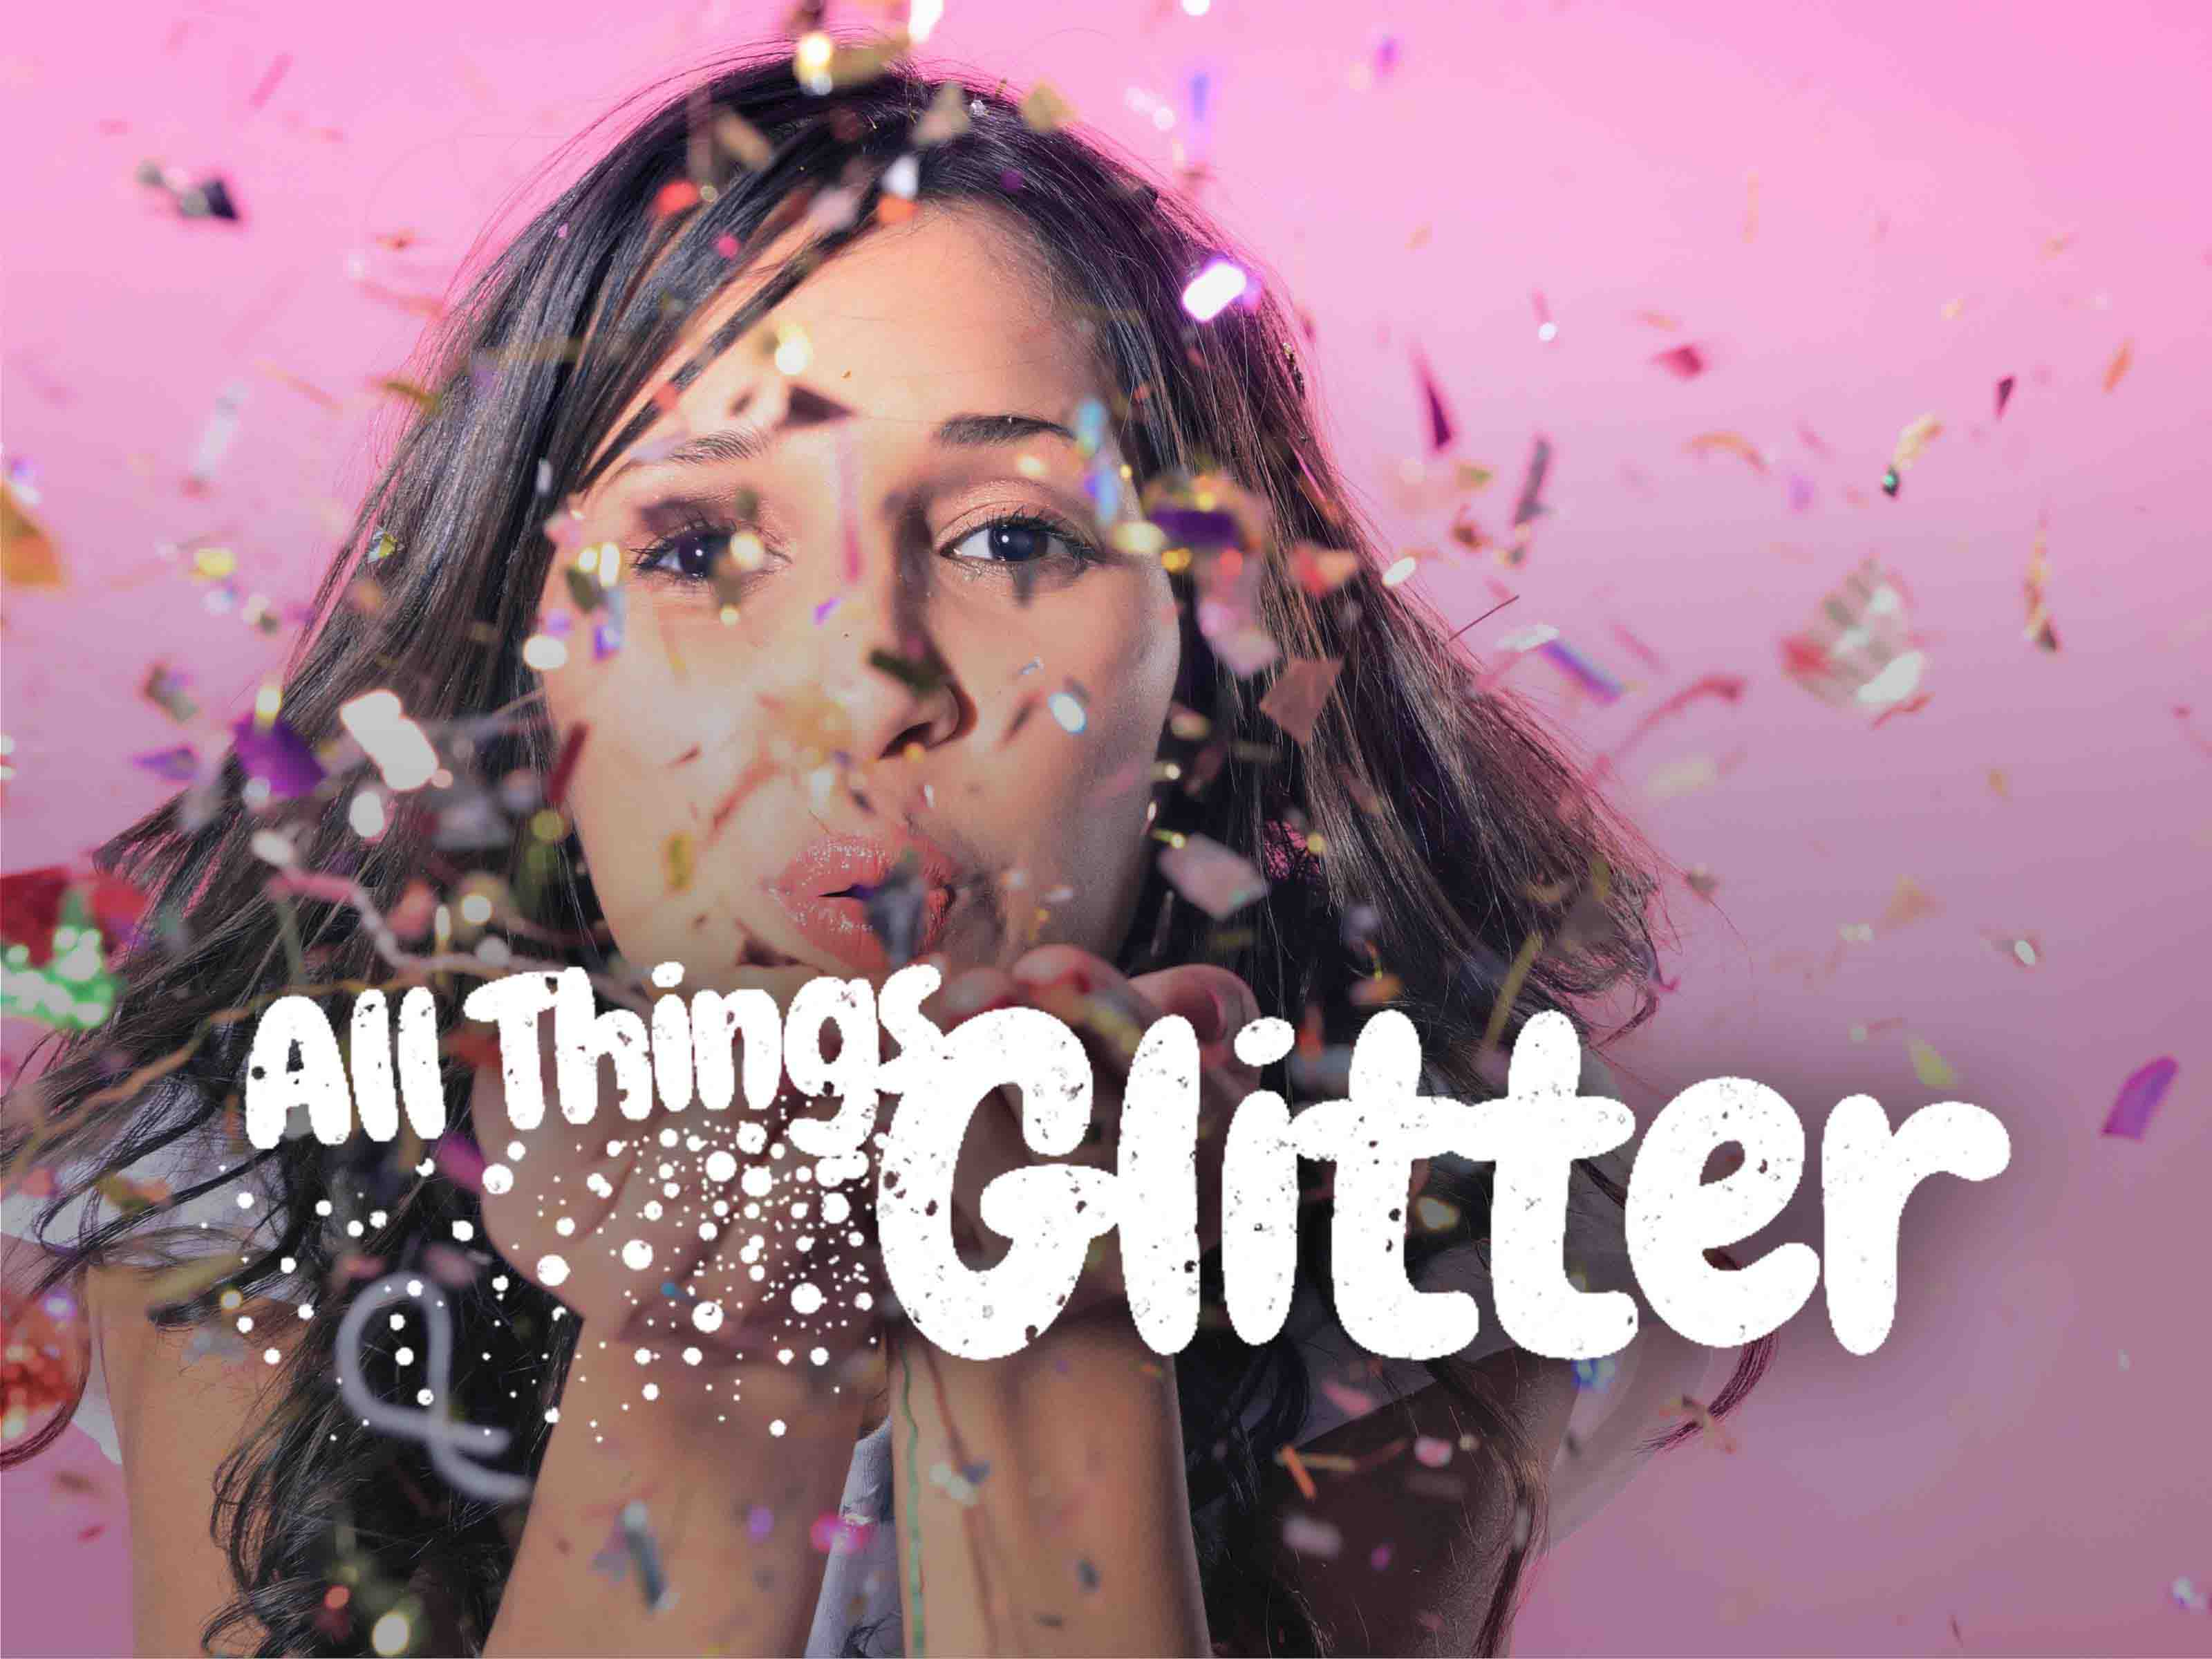 Hen Party Themes - All Things Glitter